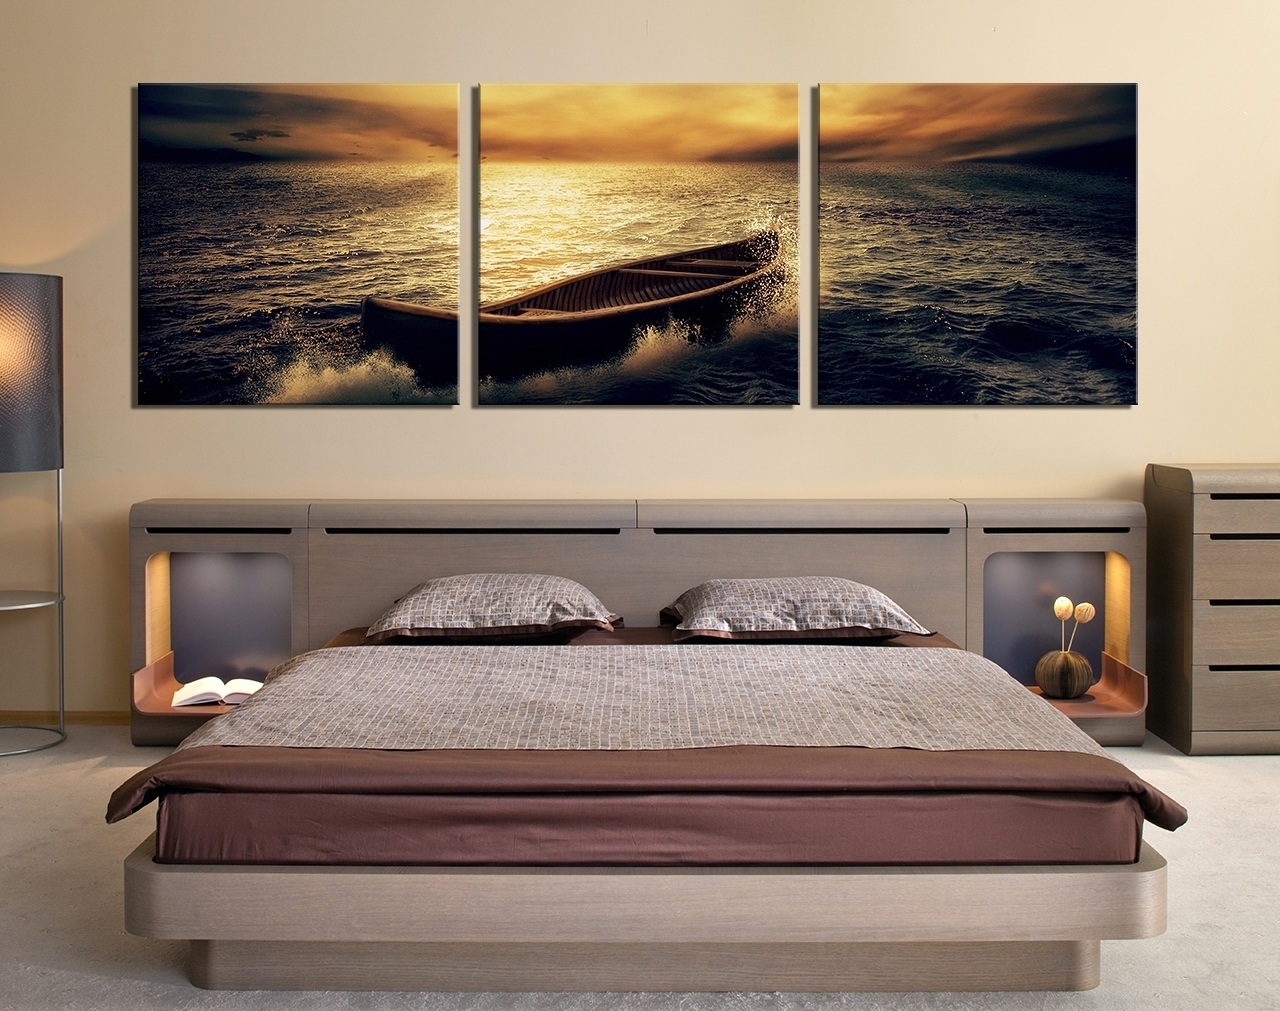 Luxury Canvas Wall Art For Bedroom | Wall Decorations Intended For 2017 Ocean Wall Art (View 14 of 20)